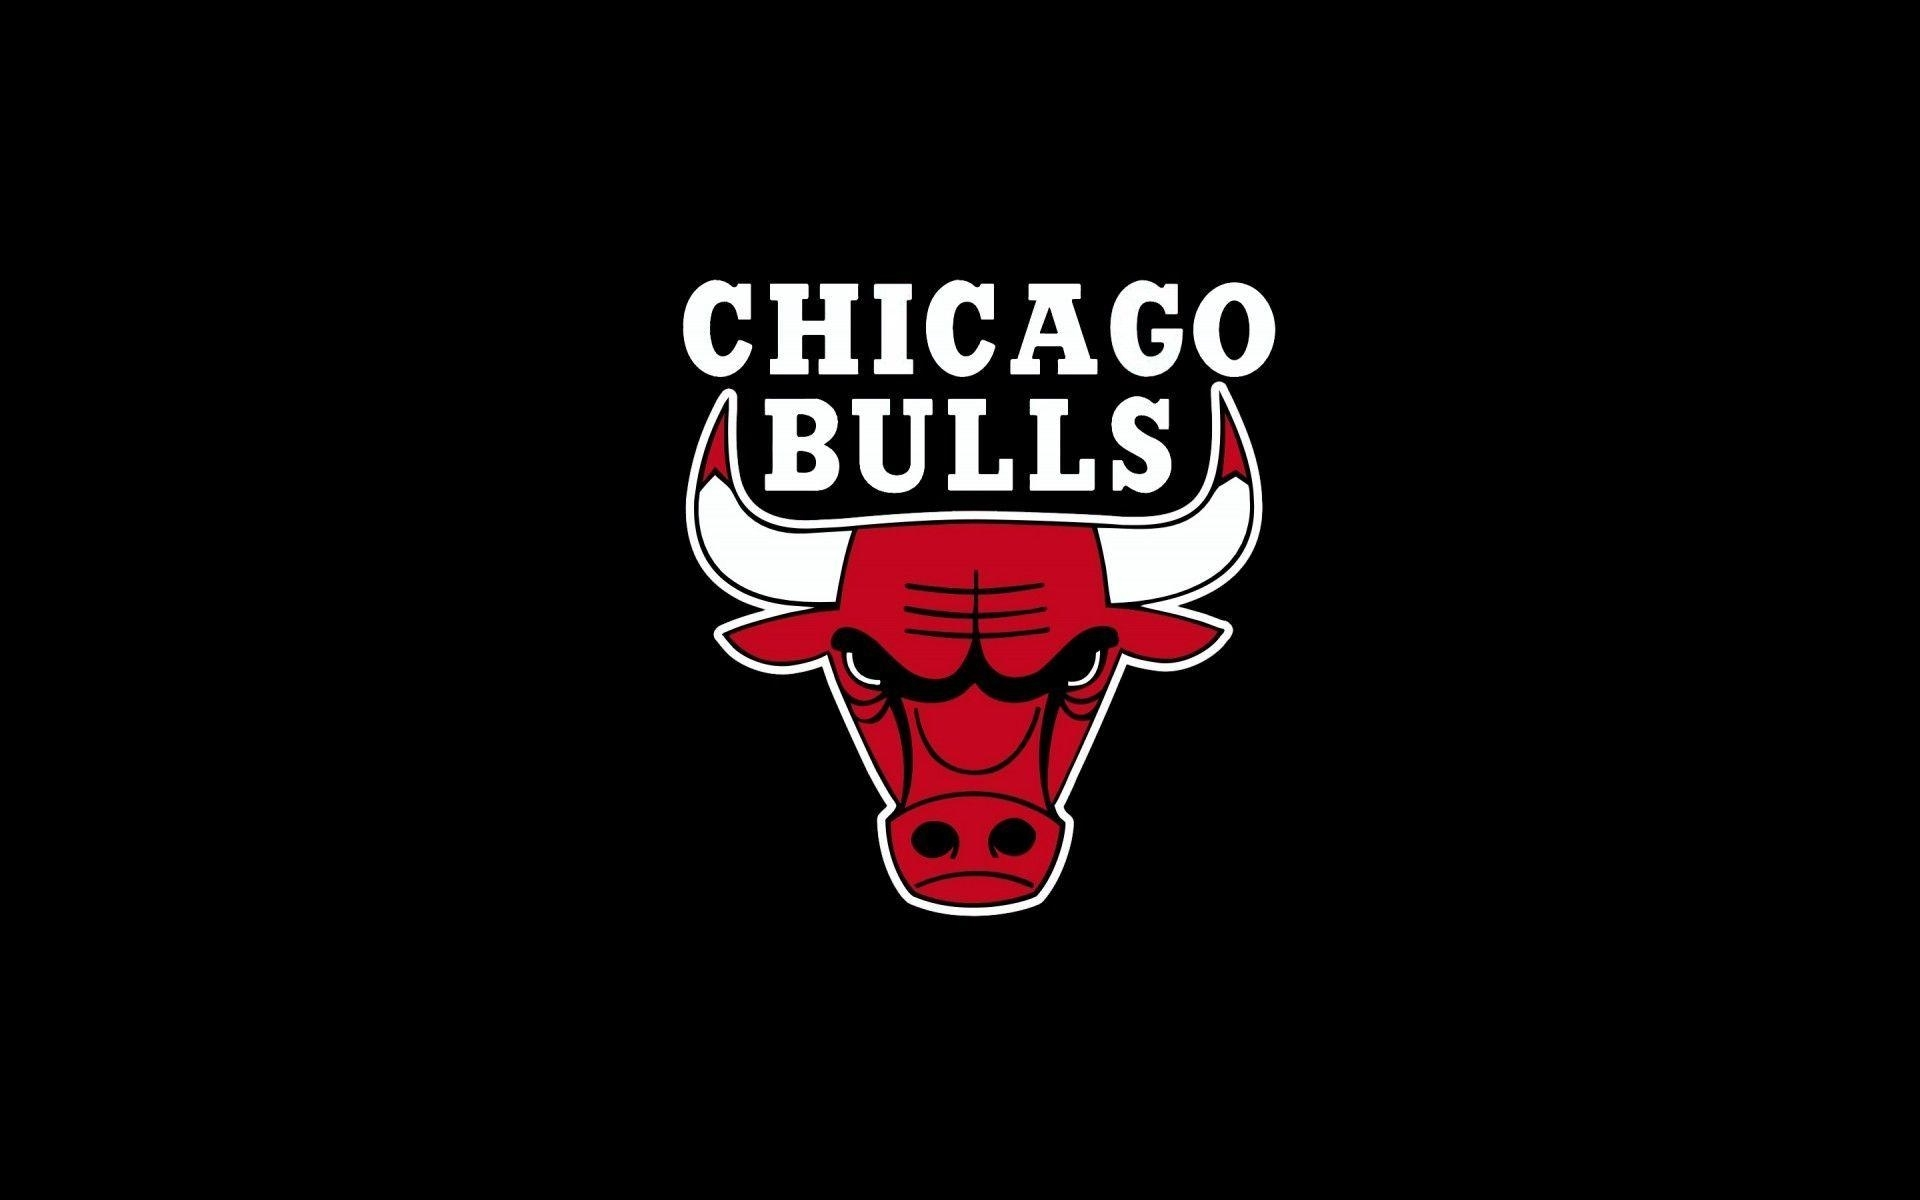 chicago bulls wallpapers hd - wallpaper cave